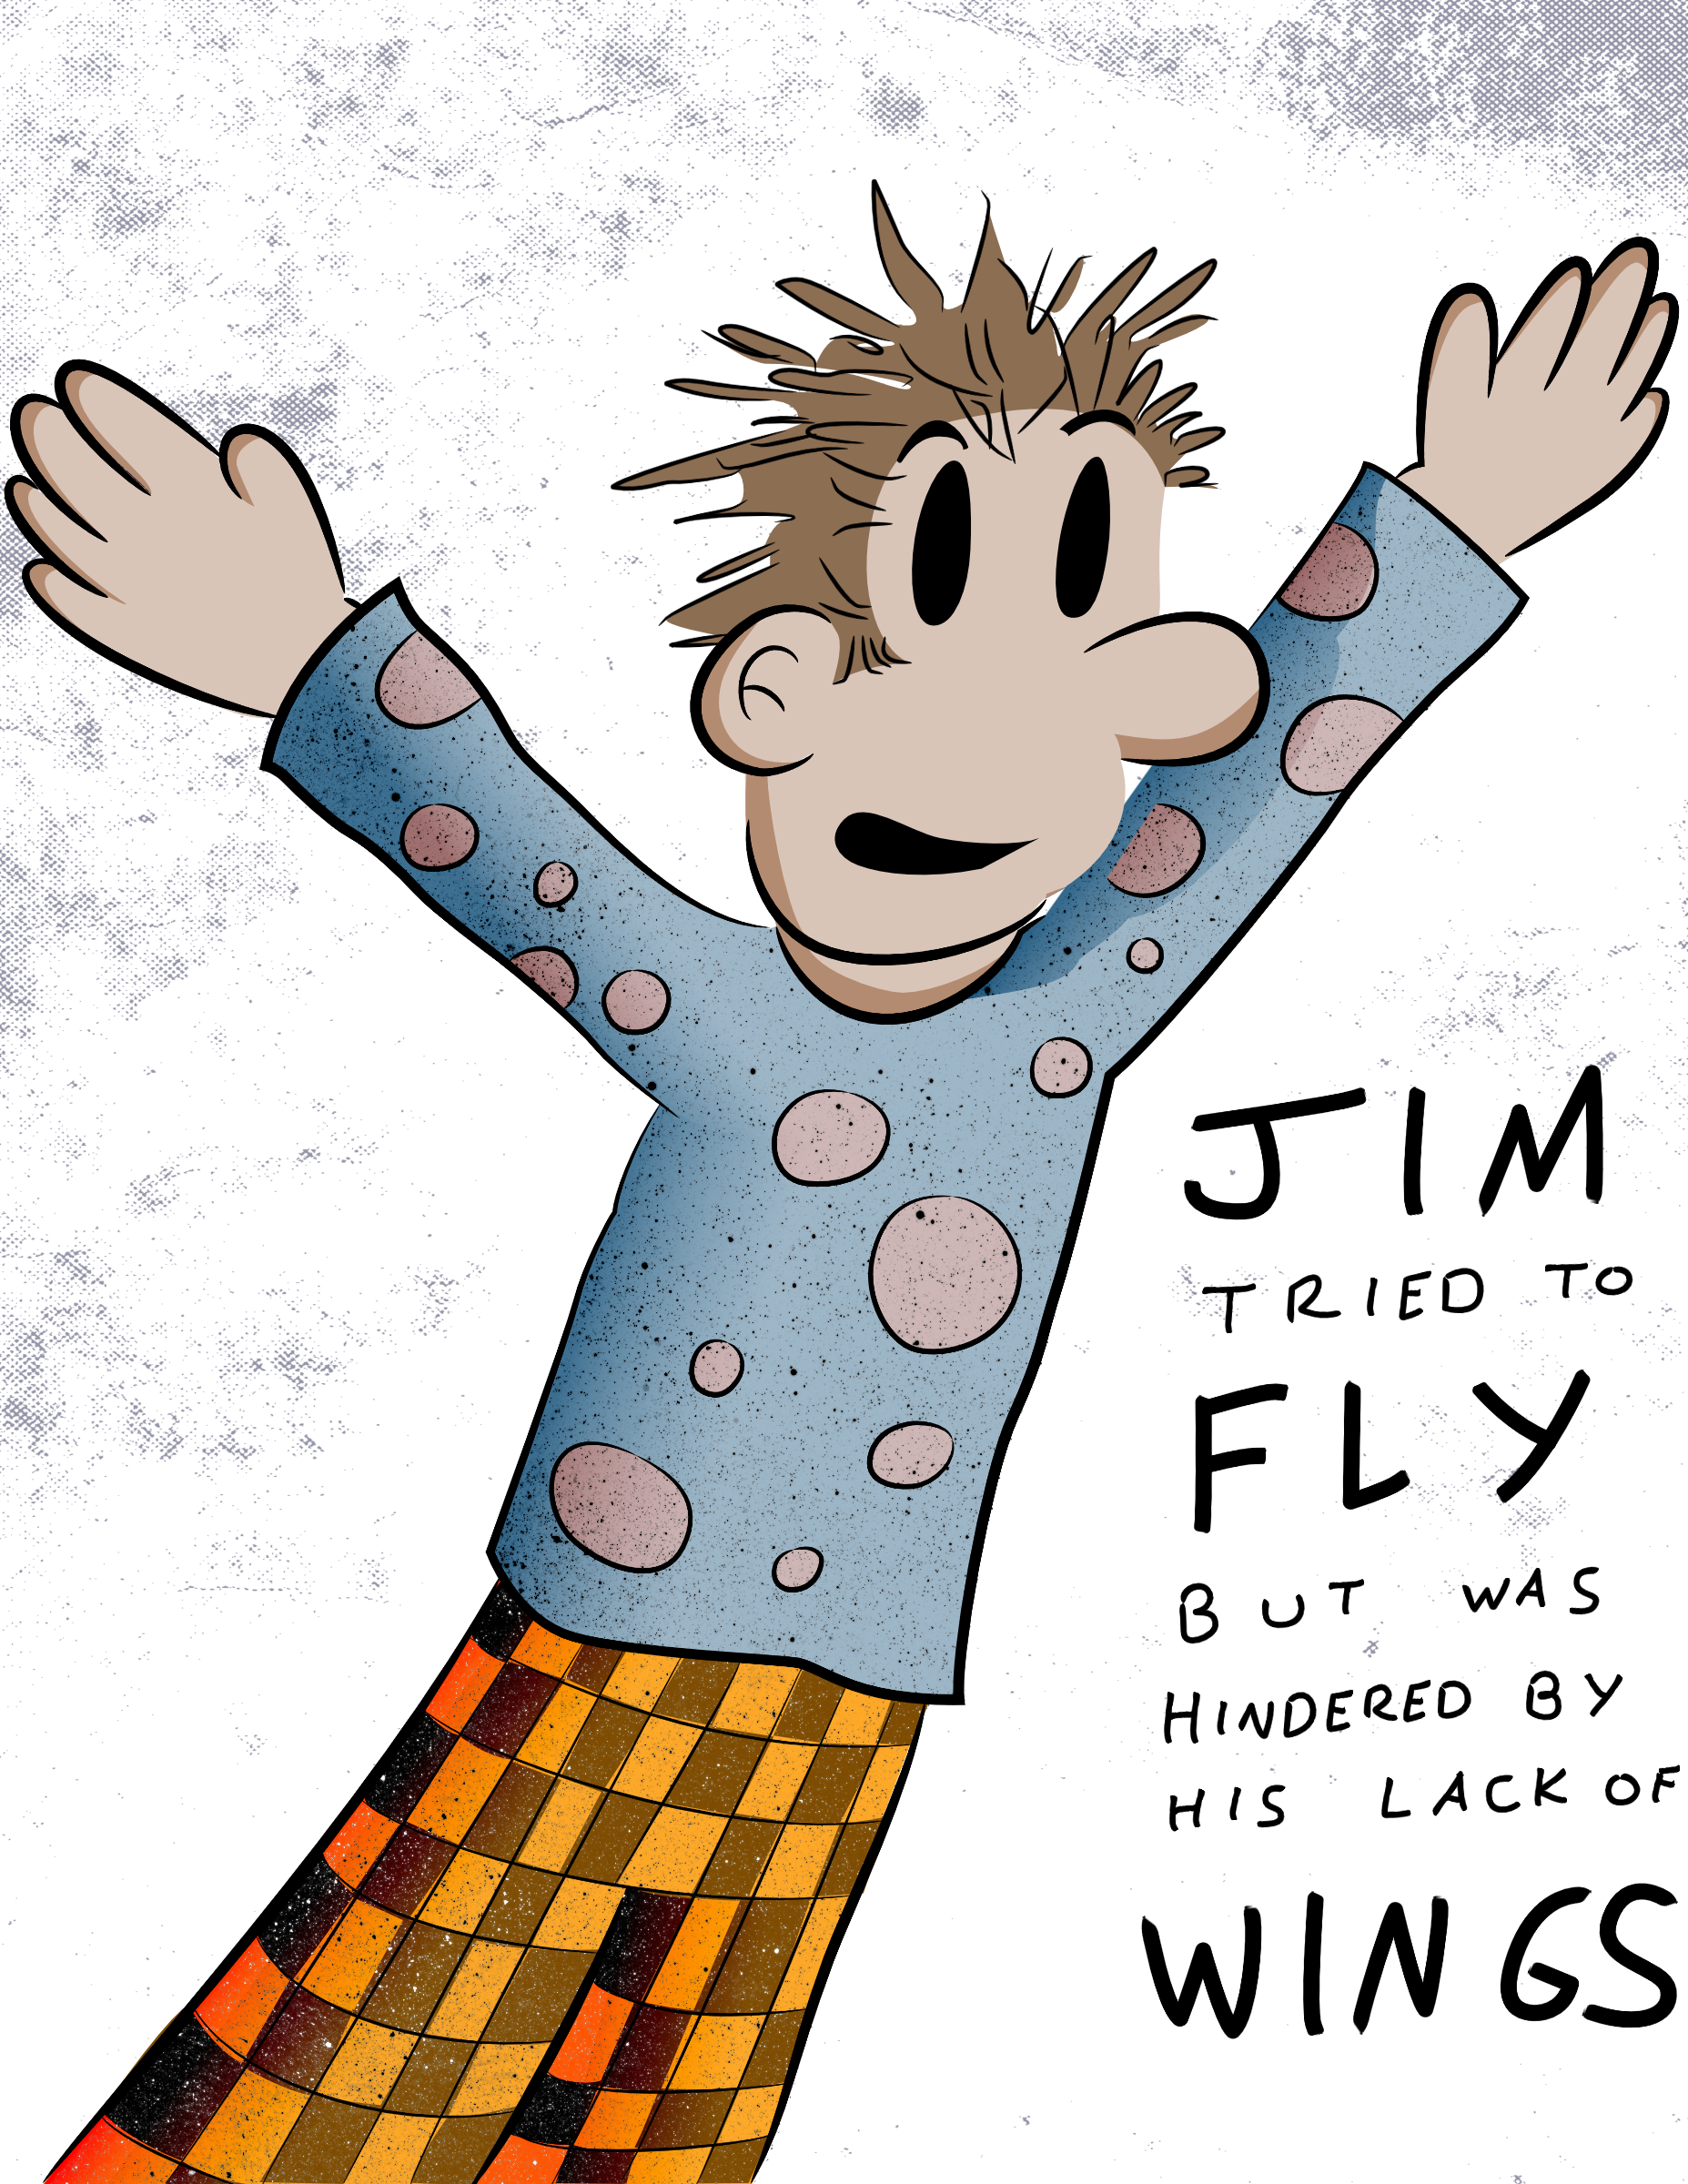 Jim Tried To Fly